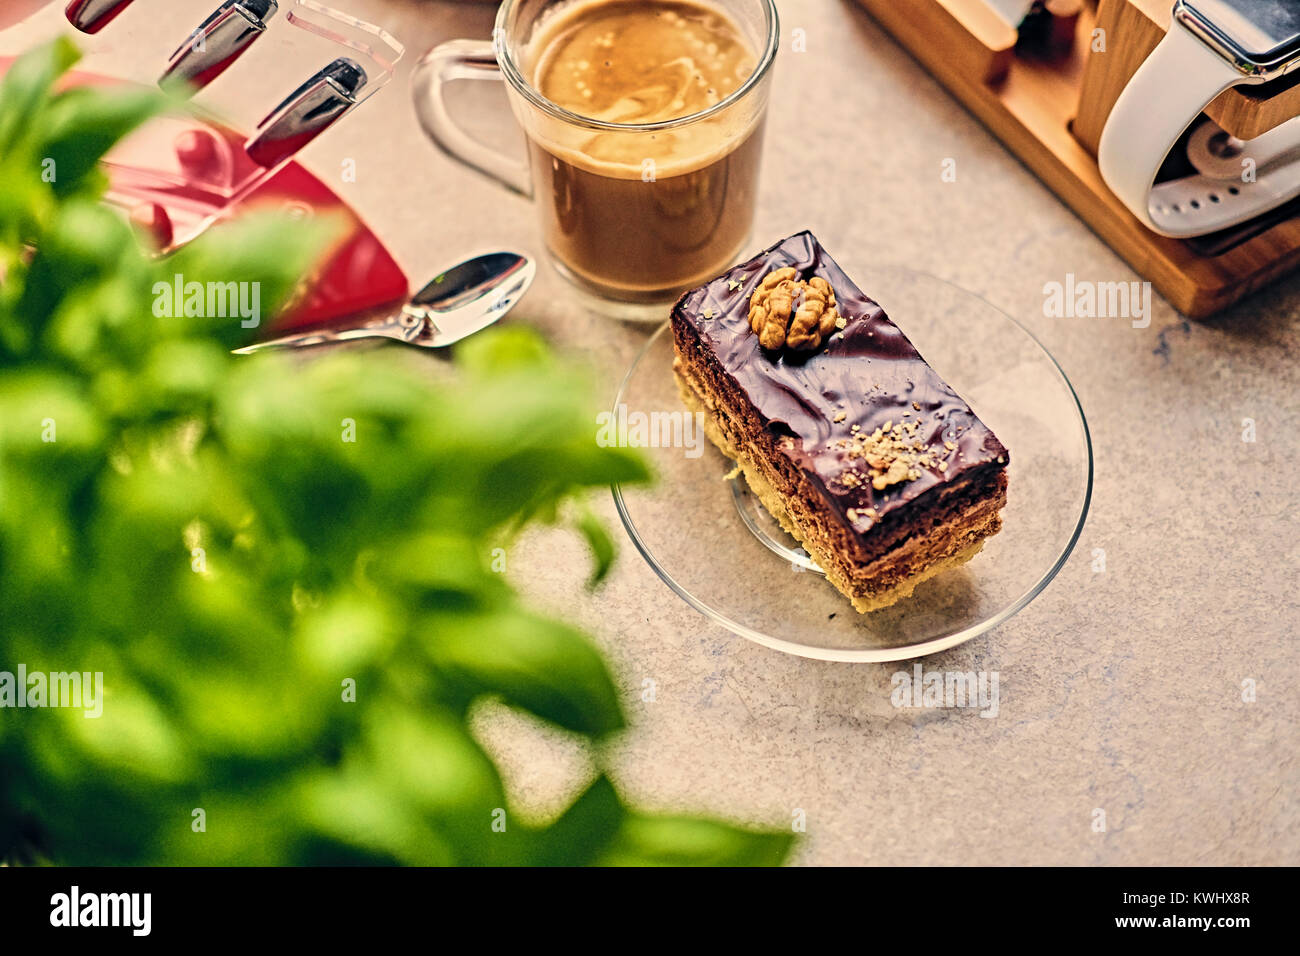 Sweet, delicious cake, herbs and cup of coffee - Stock Image